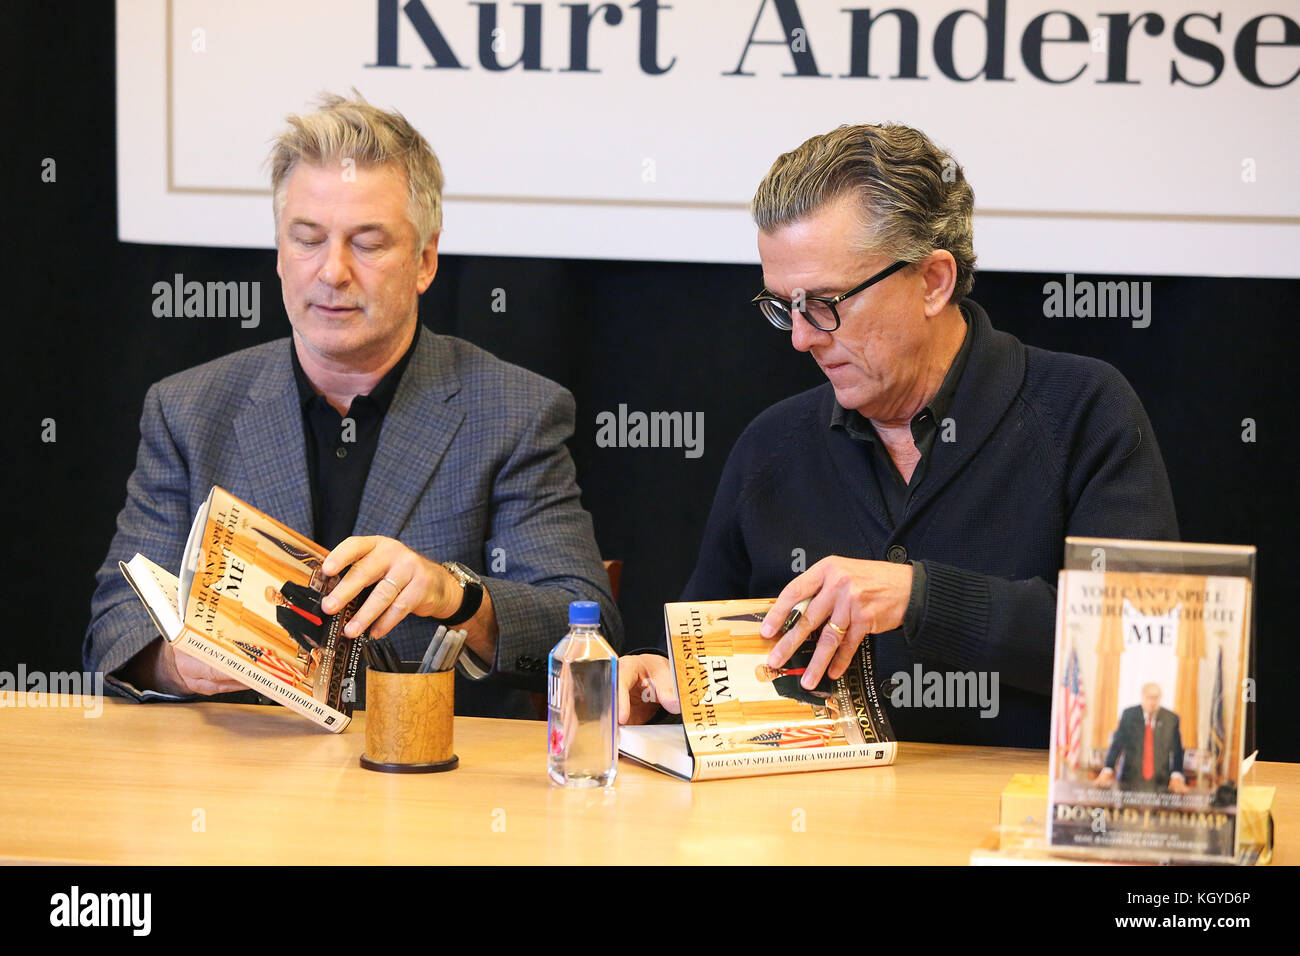 princeton, nj, usa 10th nov, 2017 alec baldwin and kurt andersenprinceton, nj, usa 10th nov, 2017 alec baldwin and kurt andersen pictured at barnes and noble for a book signing event for the new book, you can\u0027t spell